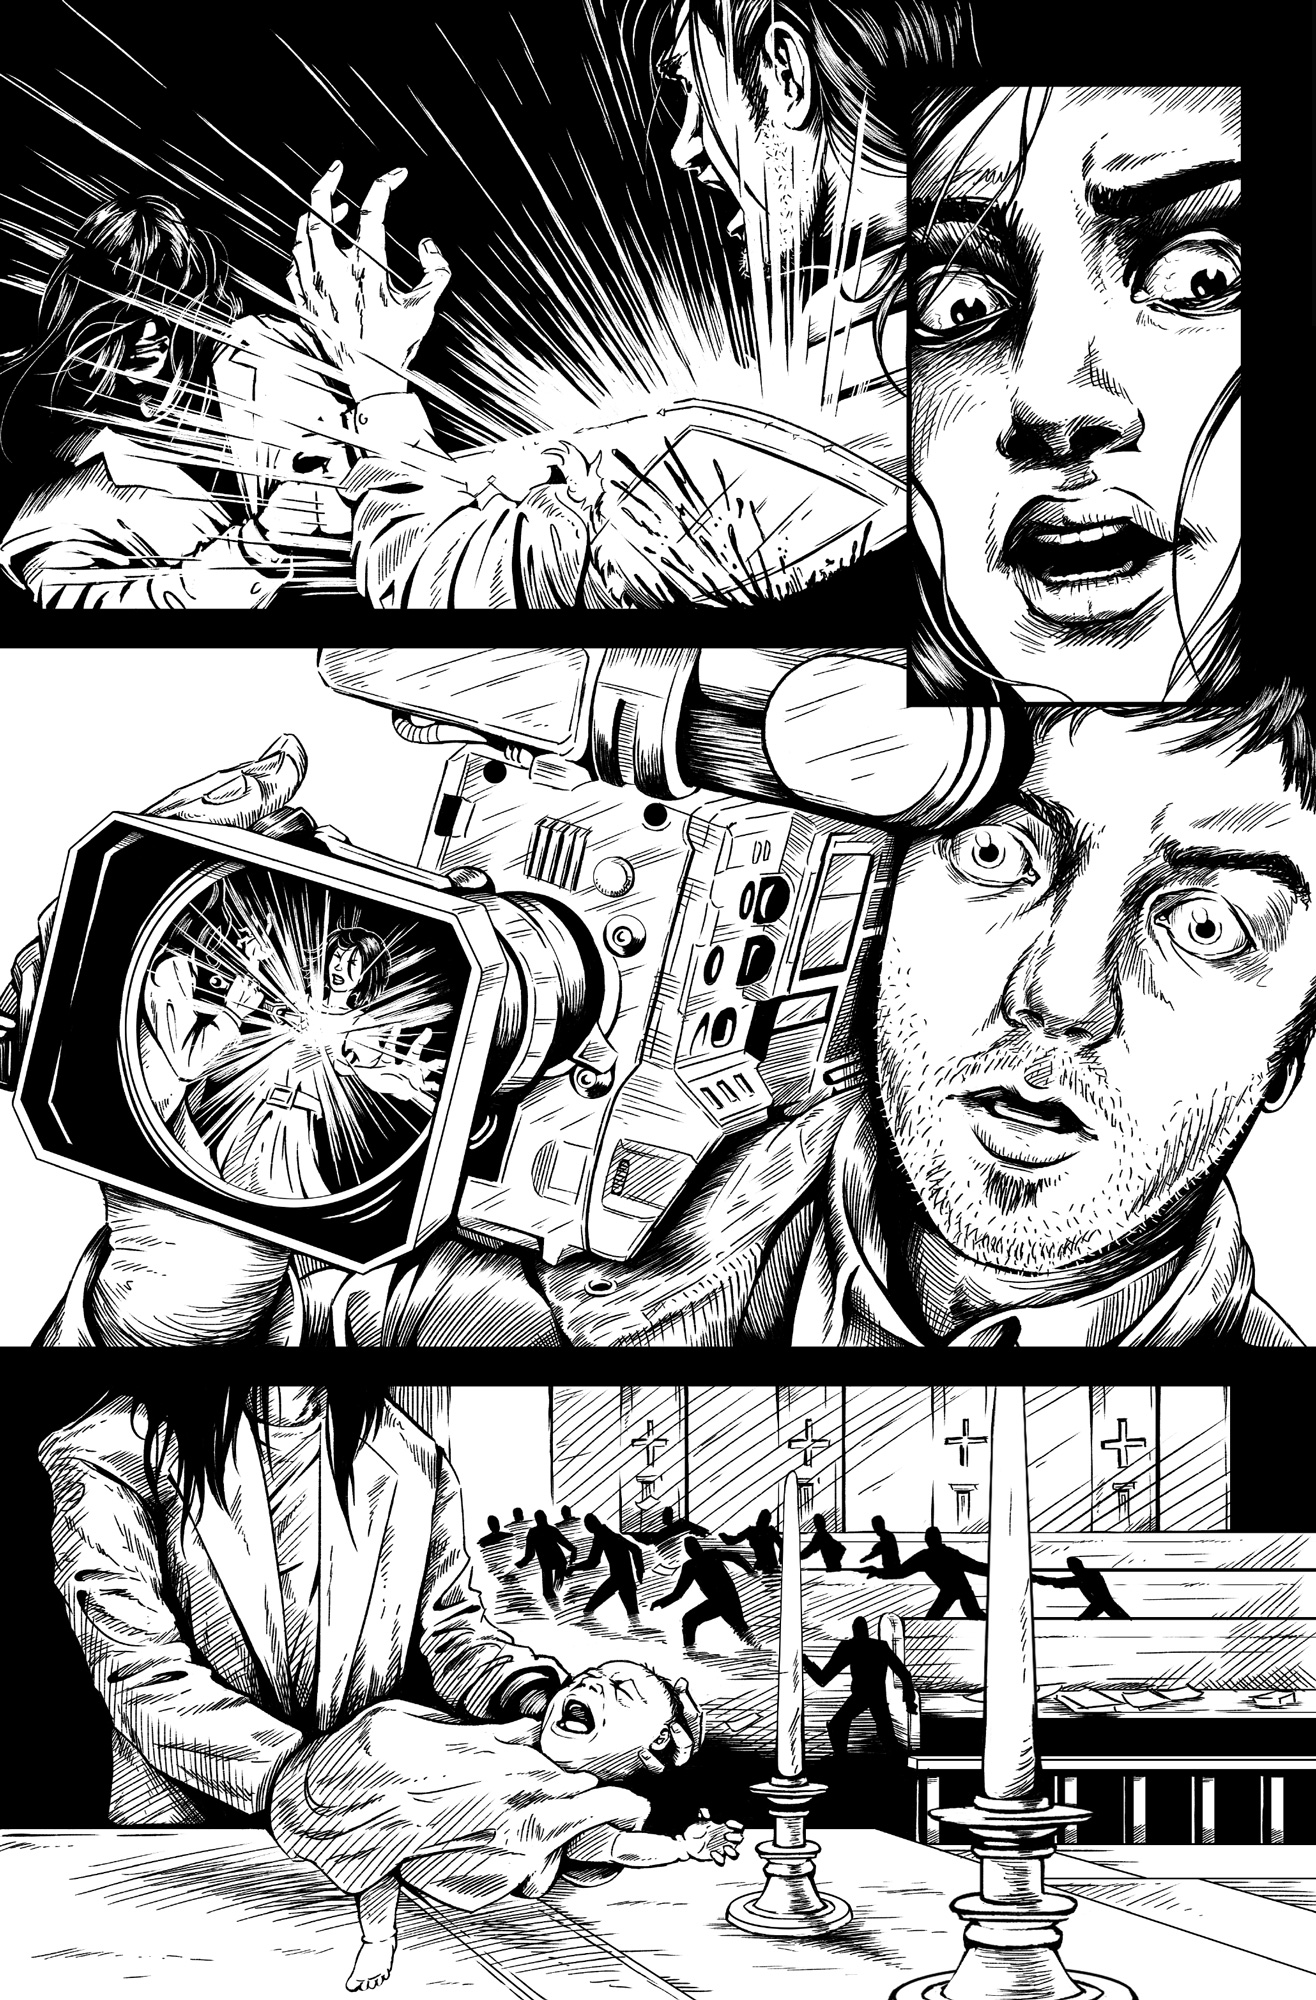 Soulbinder Issue 2, Page 6